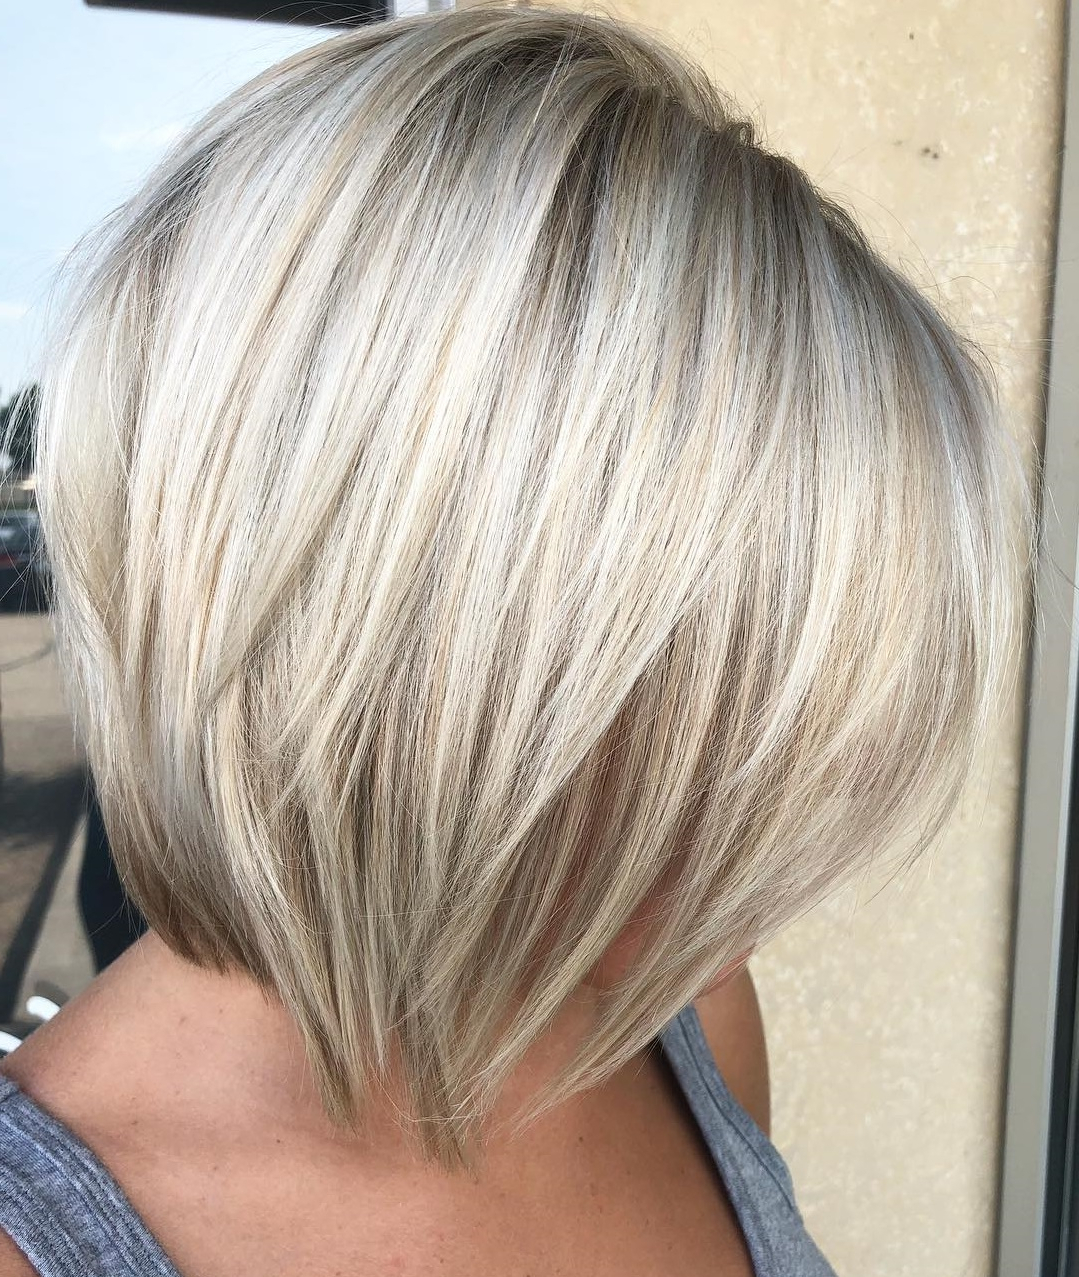 45 Short Hairstyles For Fine Hair To Rock In 2019 For Angled Bob Hairstyles With Razored Ends (View 14 of 20)